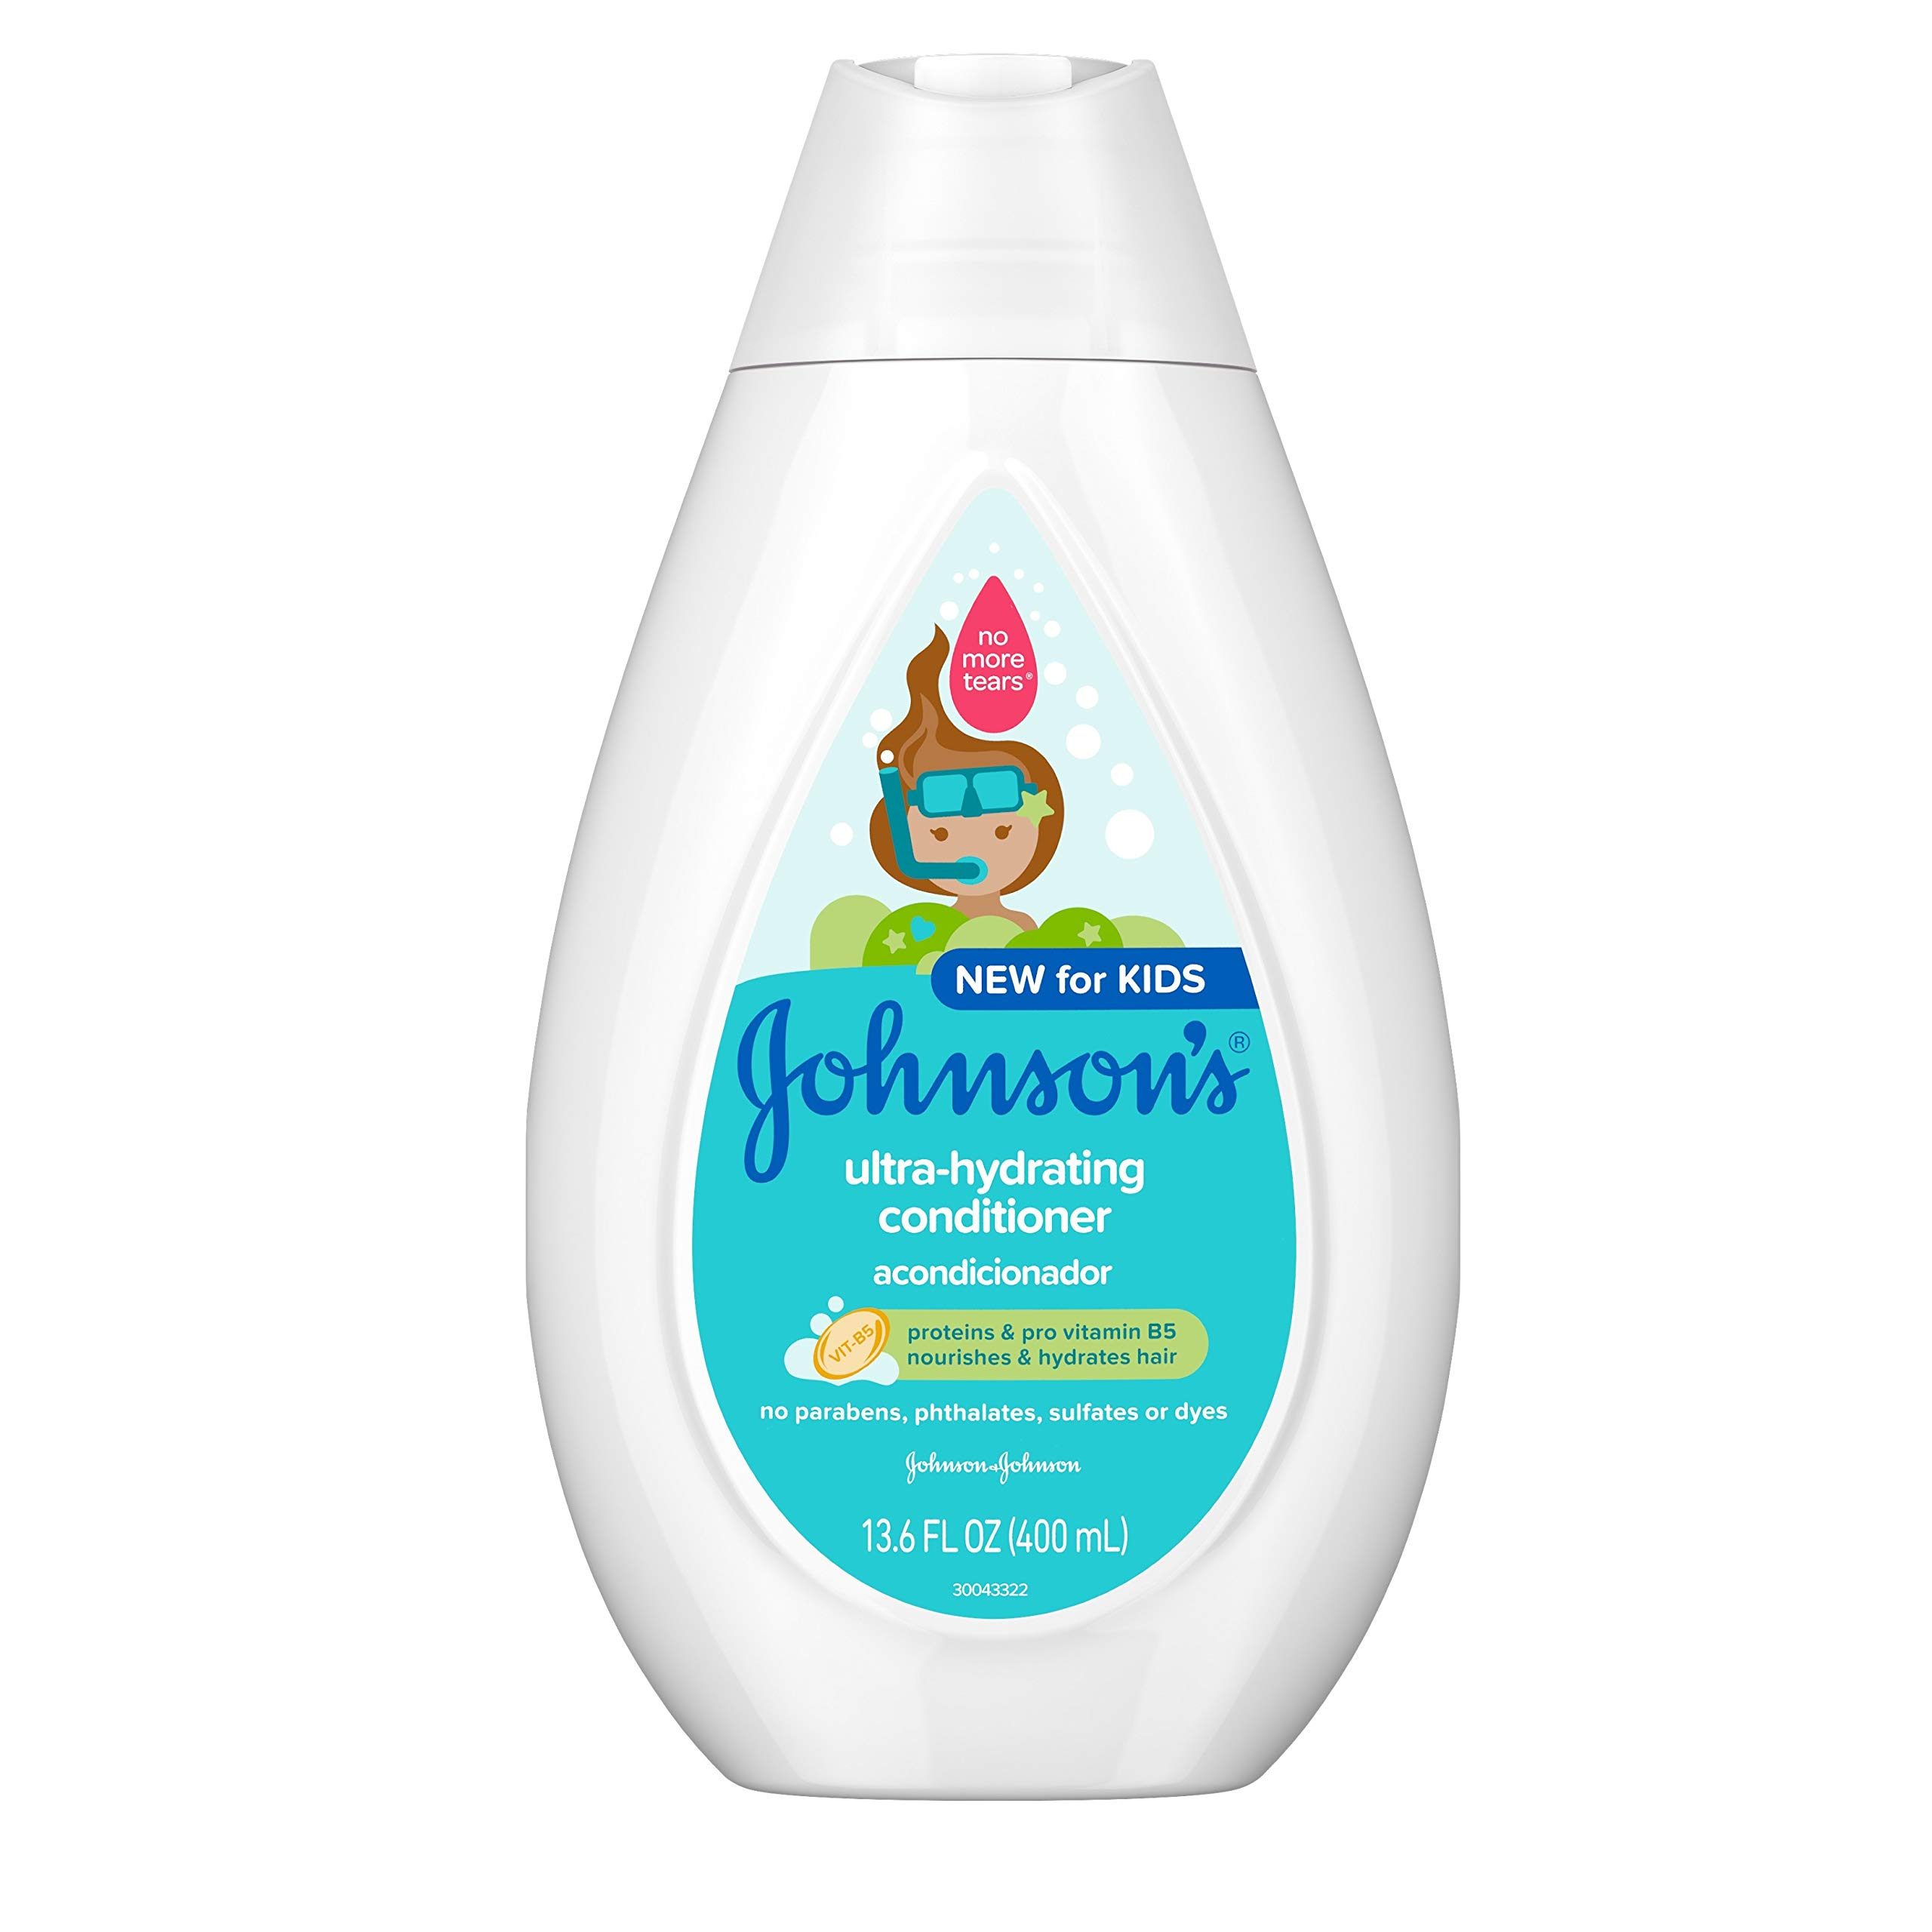 Johnson's Ultra-Hydrating Tear-Free Kids' Conditioner with Pro-Vitamin B5 & Proteins, Paraben-, Sulfate- & Dye-Free…